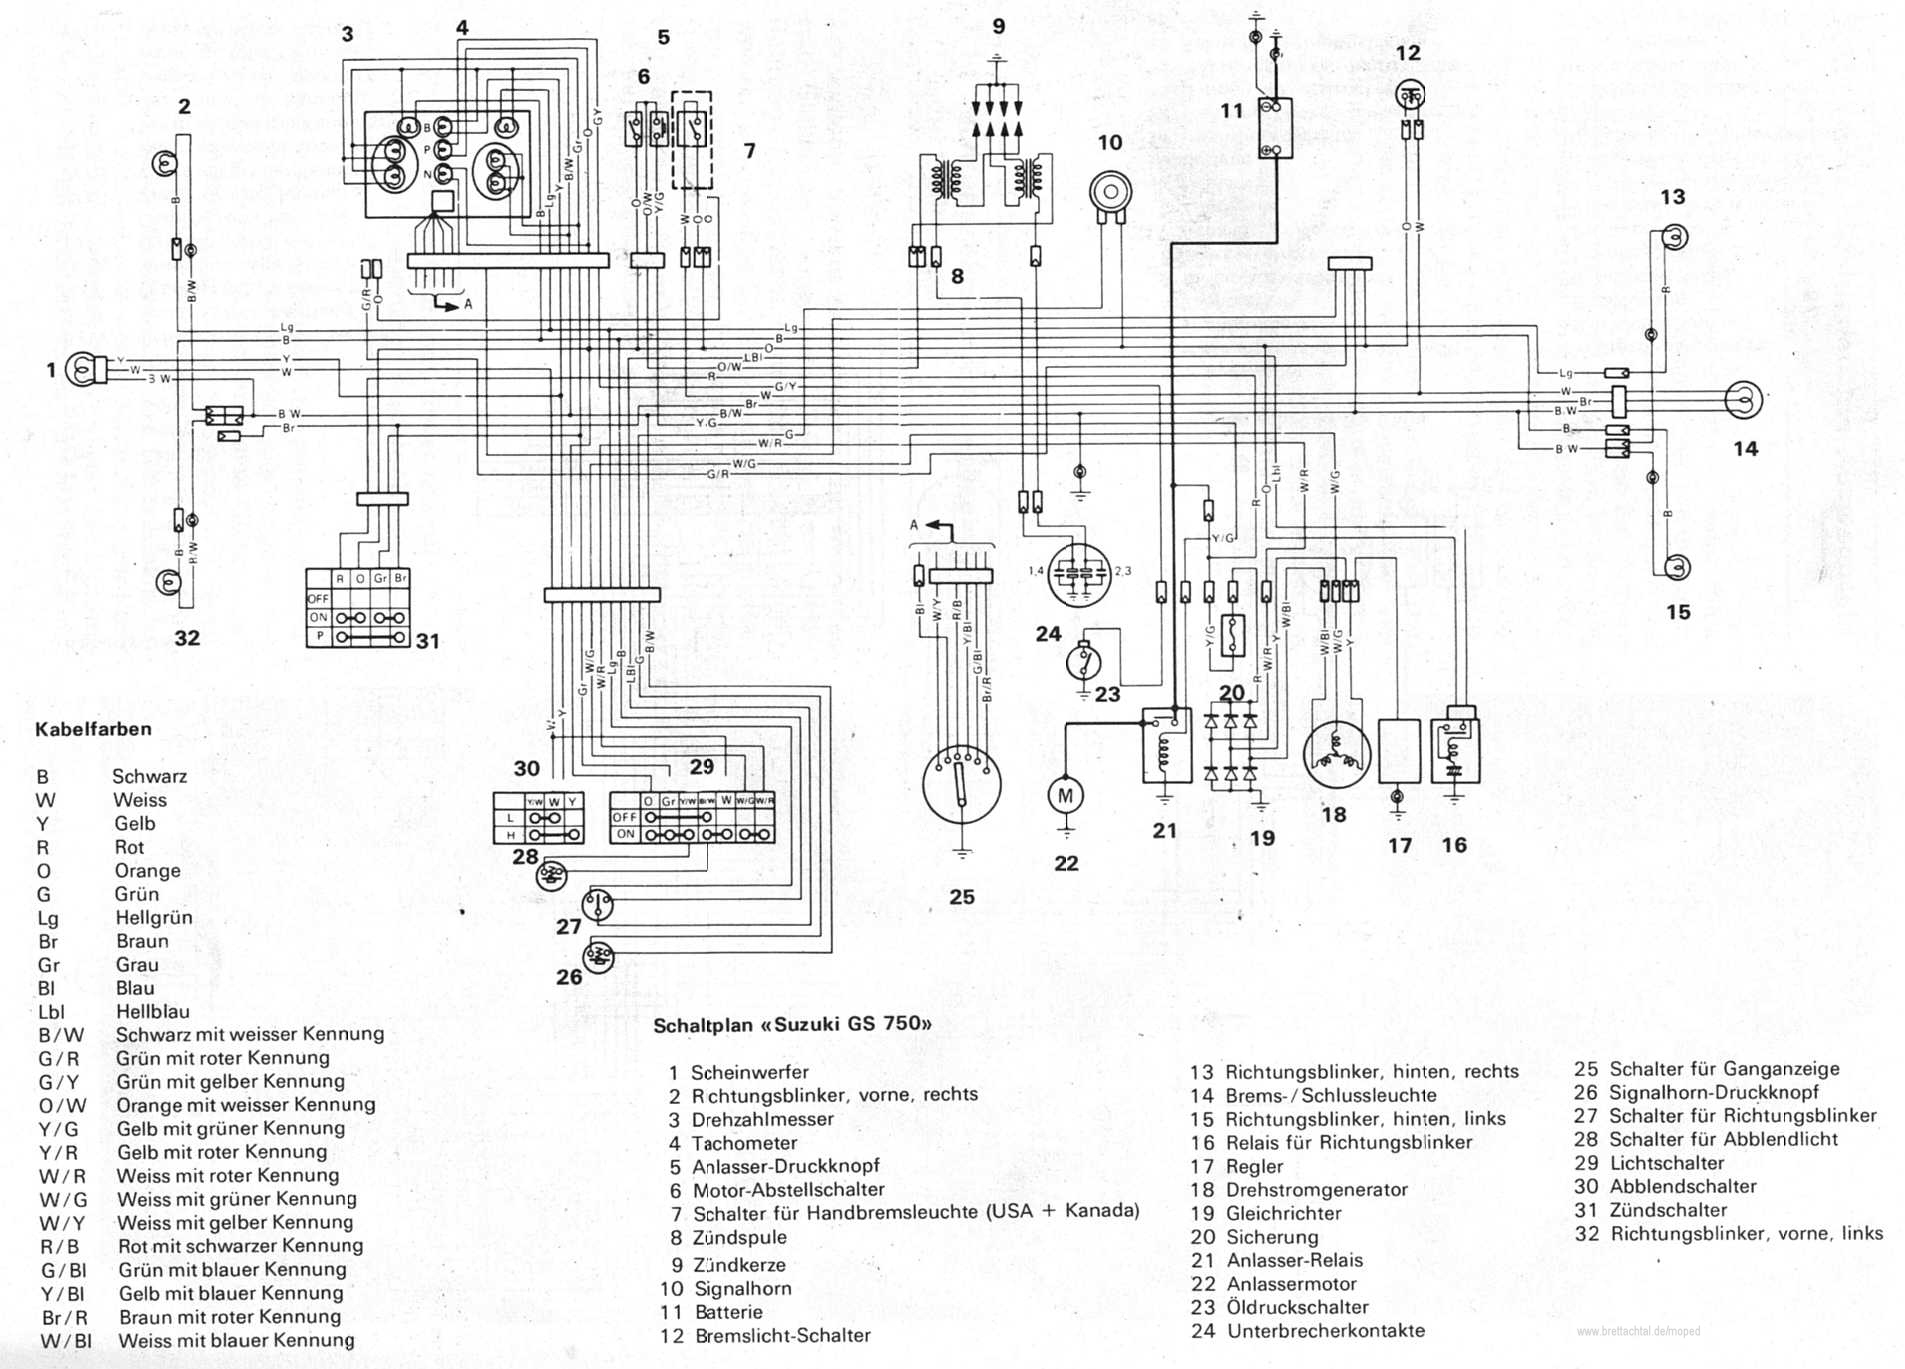 Bmw R75 5 Wiring Diagram As Well, Bmw, Free Engine Image